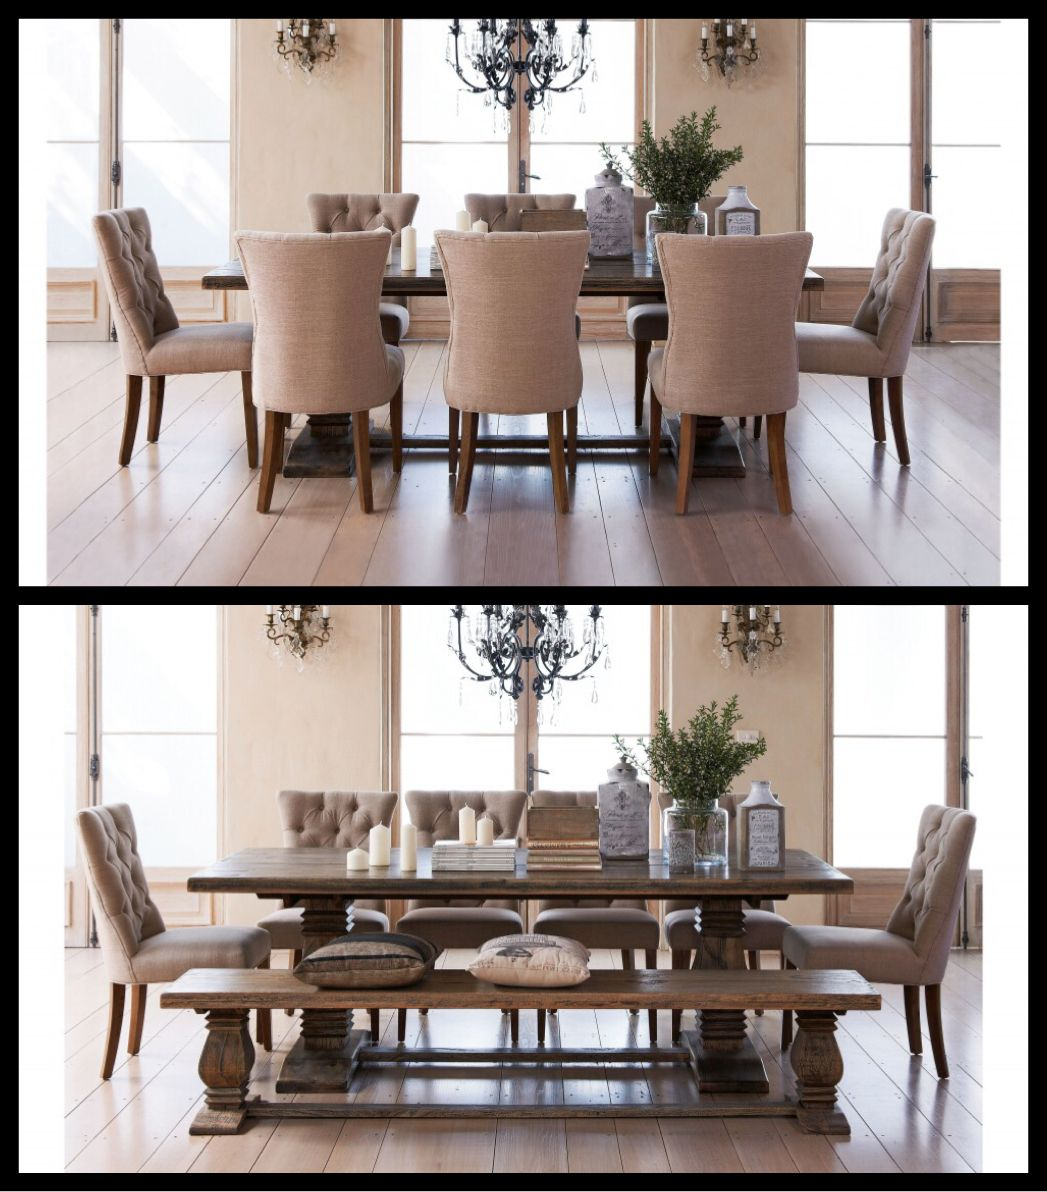 Nebraska Dining Suite From Harvey Norman A Perfect Balance Of Rustic Its Unfinished Hardwood Feel